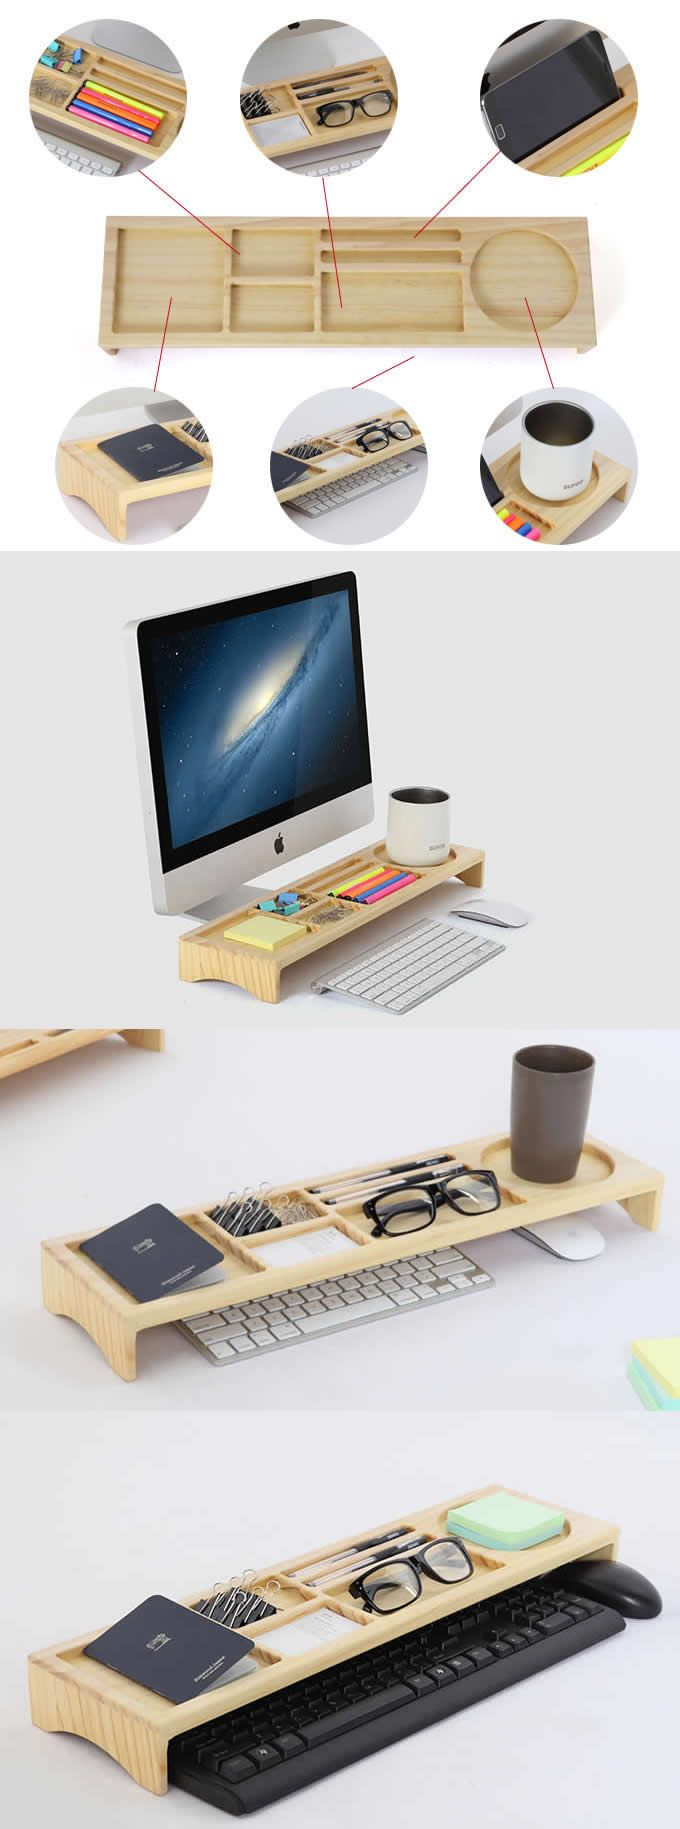 Wooden stationery office desk organizer phone stand holder pen holder over the keyboard office - Desk stationery organiser ...